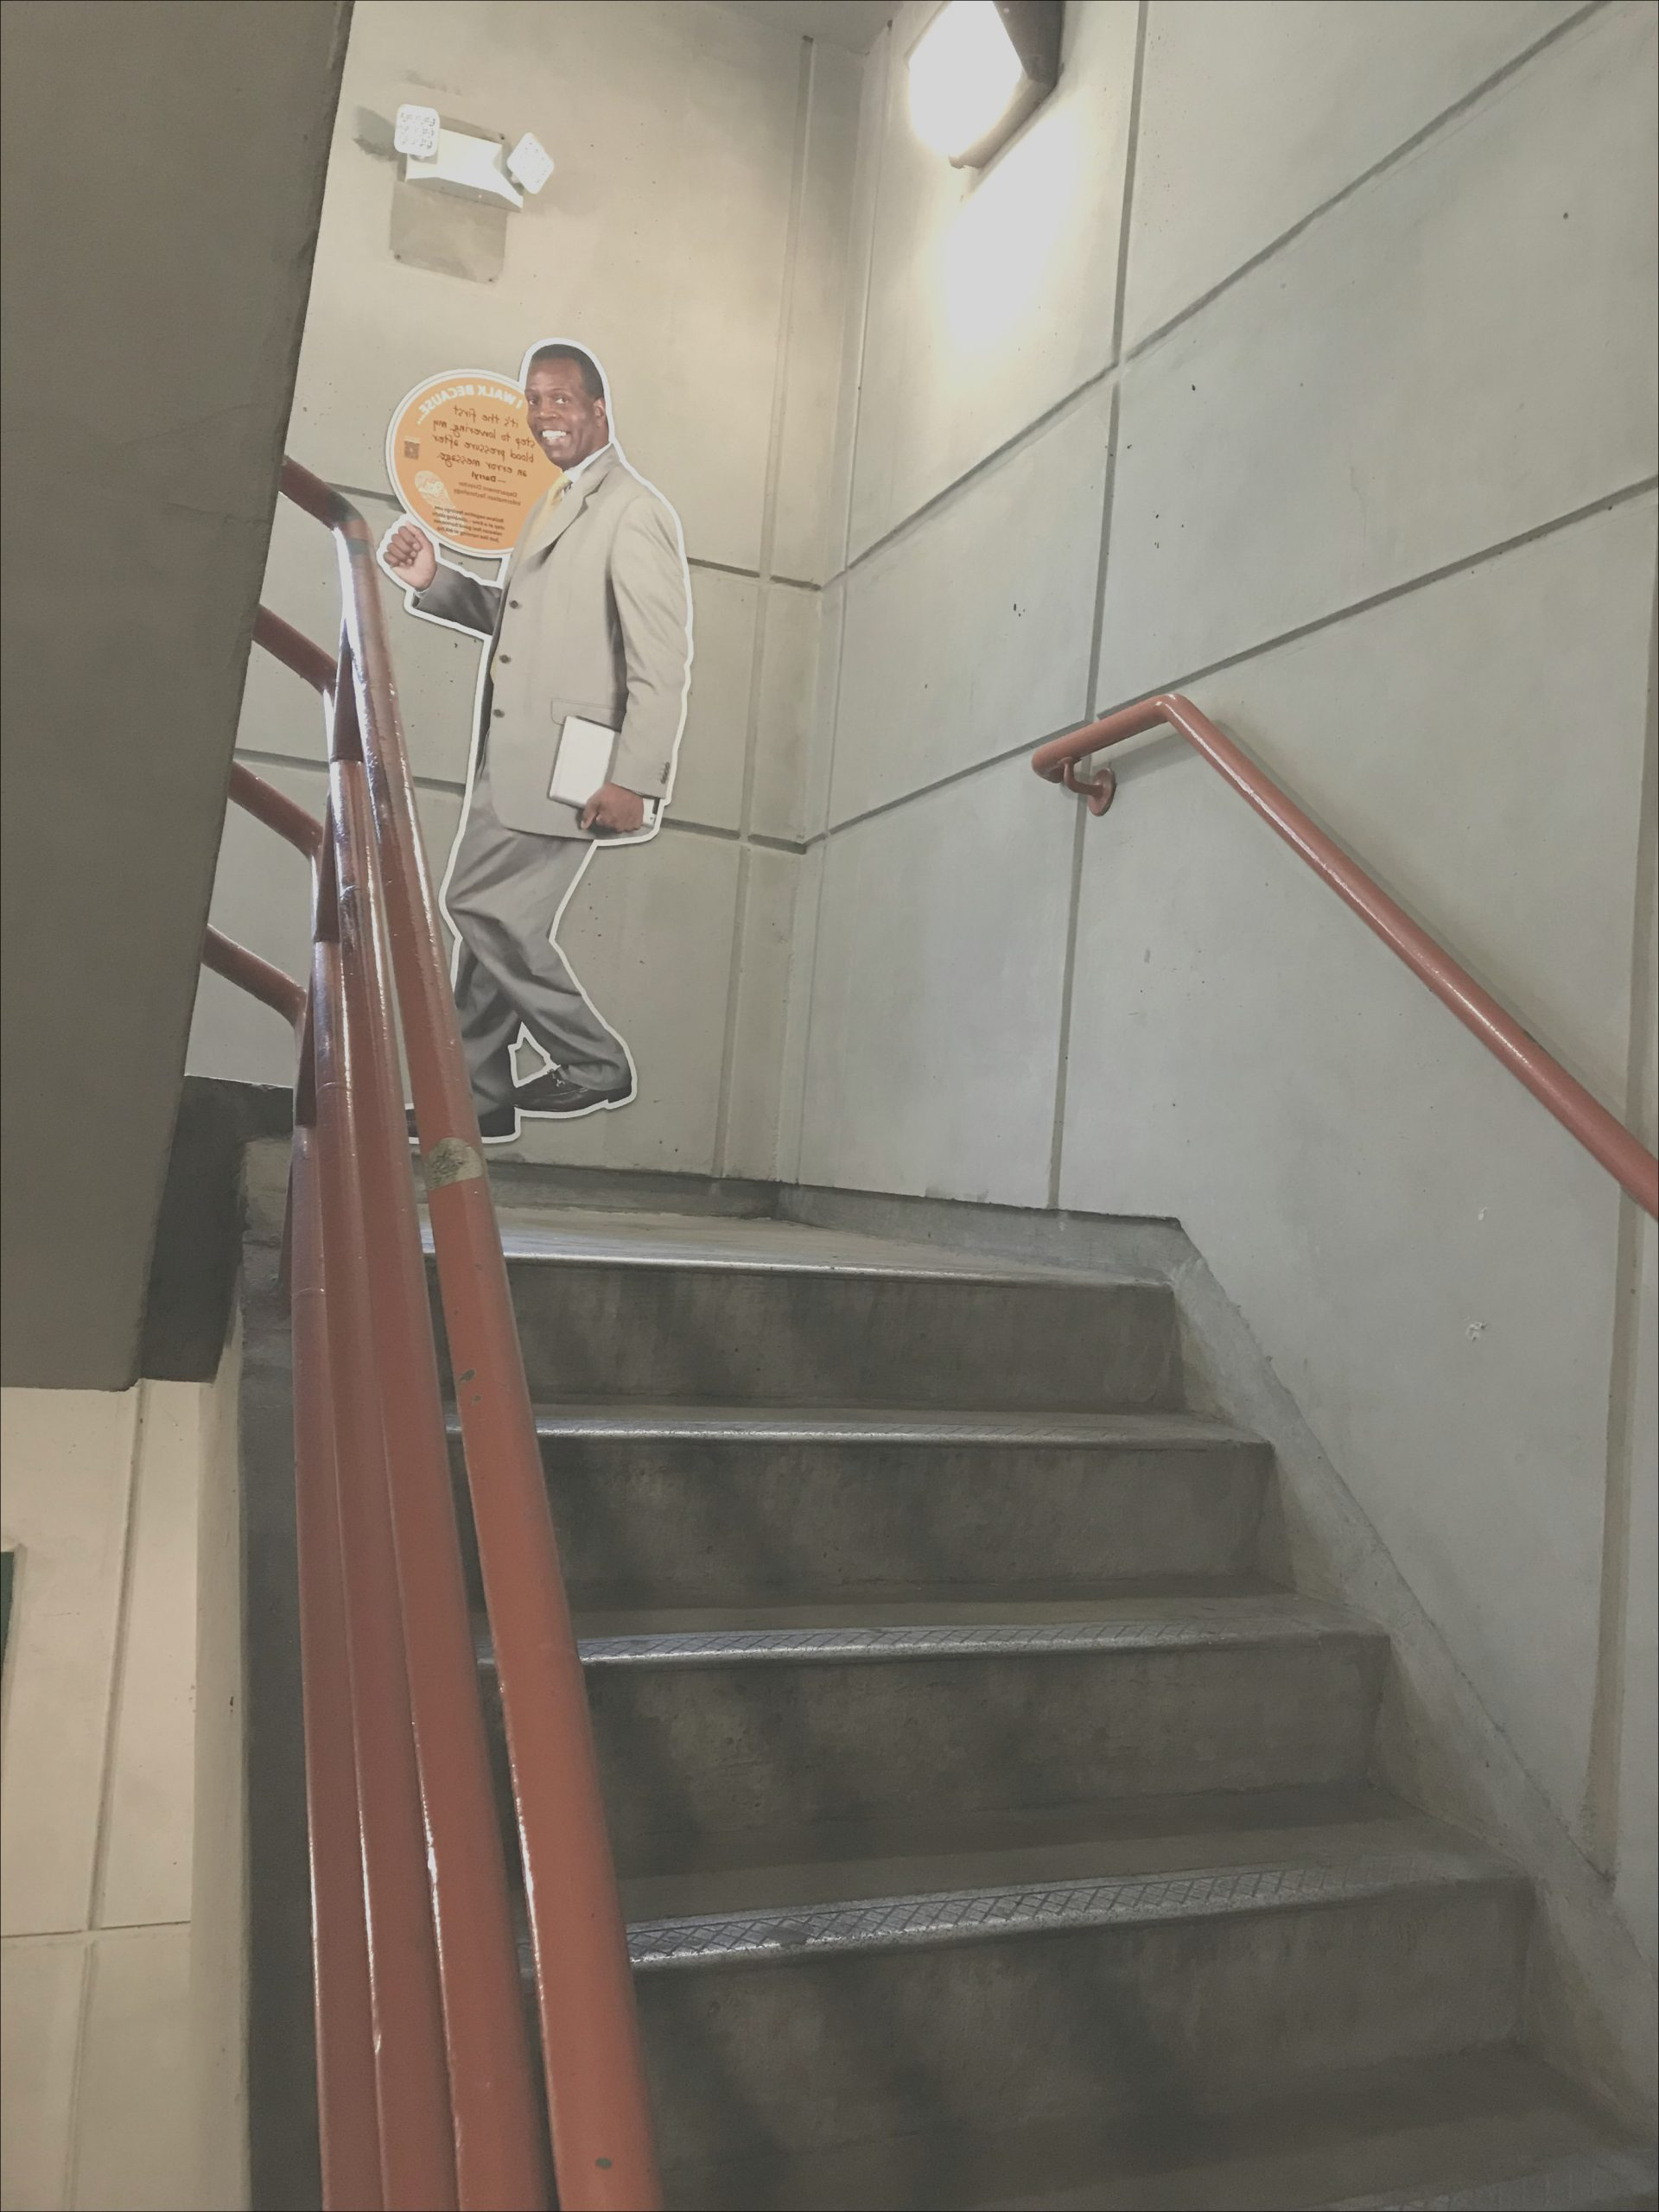 no fail every time i go into the stairwell at the